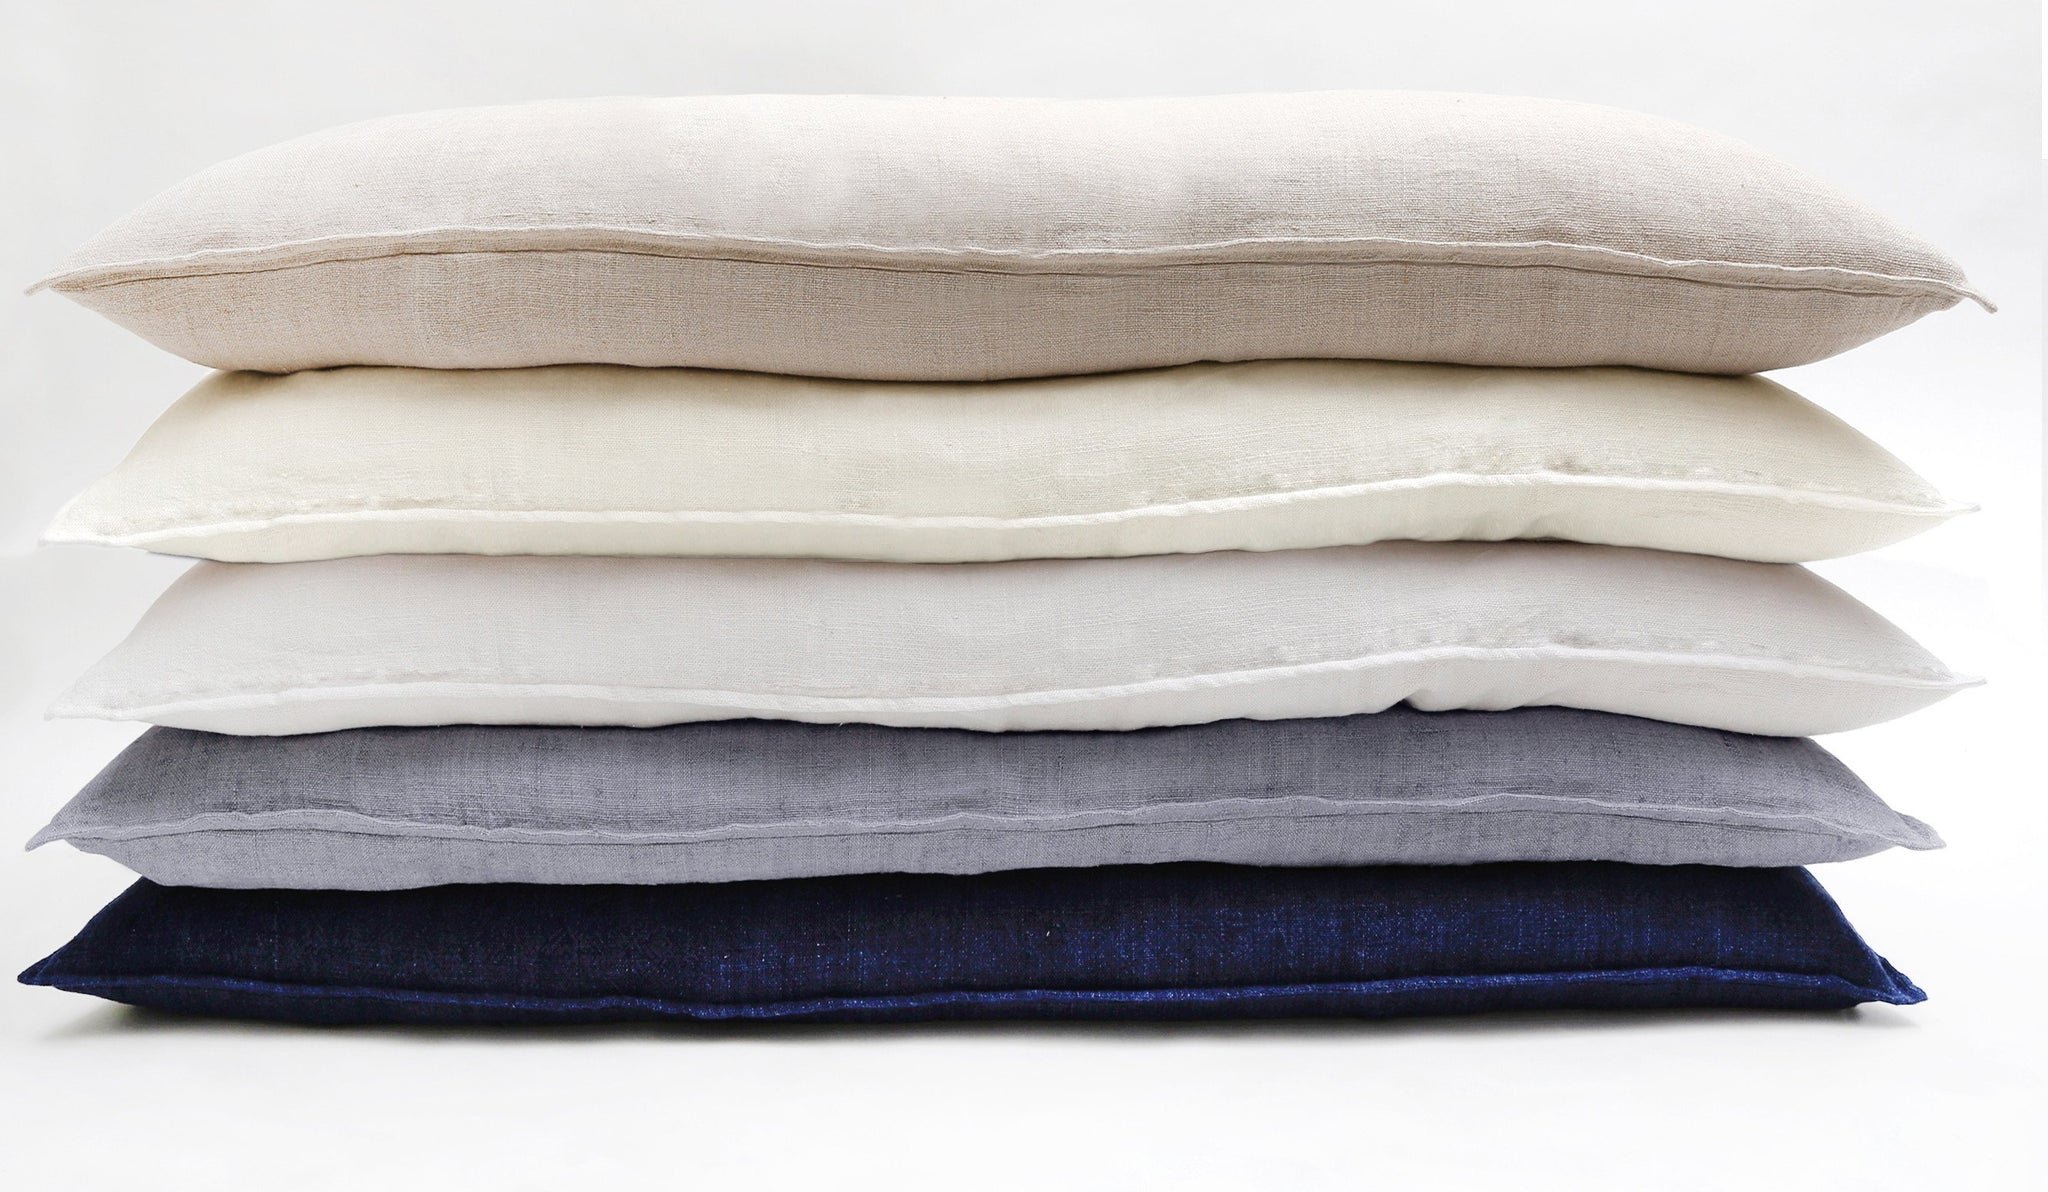 Montauk Body Pillow in Various Colors design by Pom Pom at Home ...